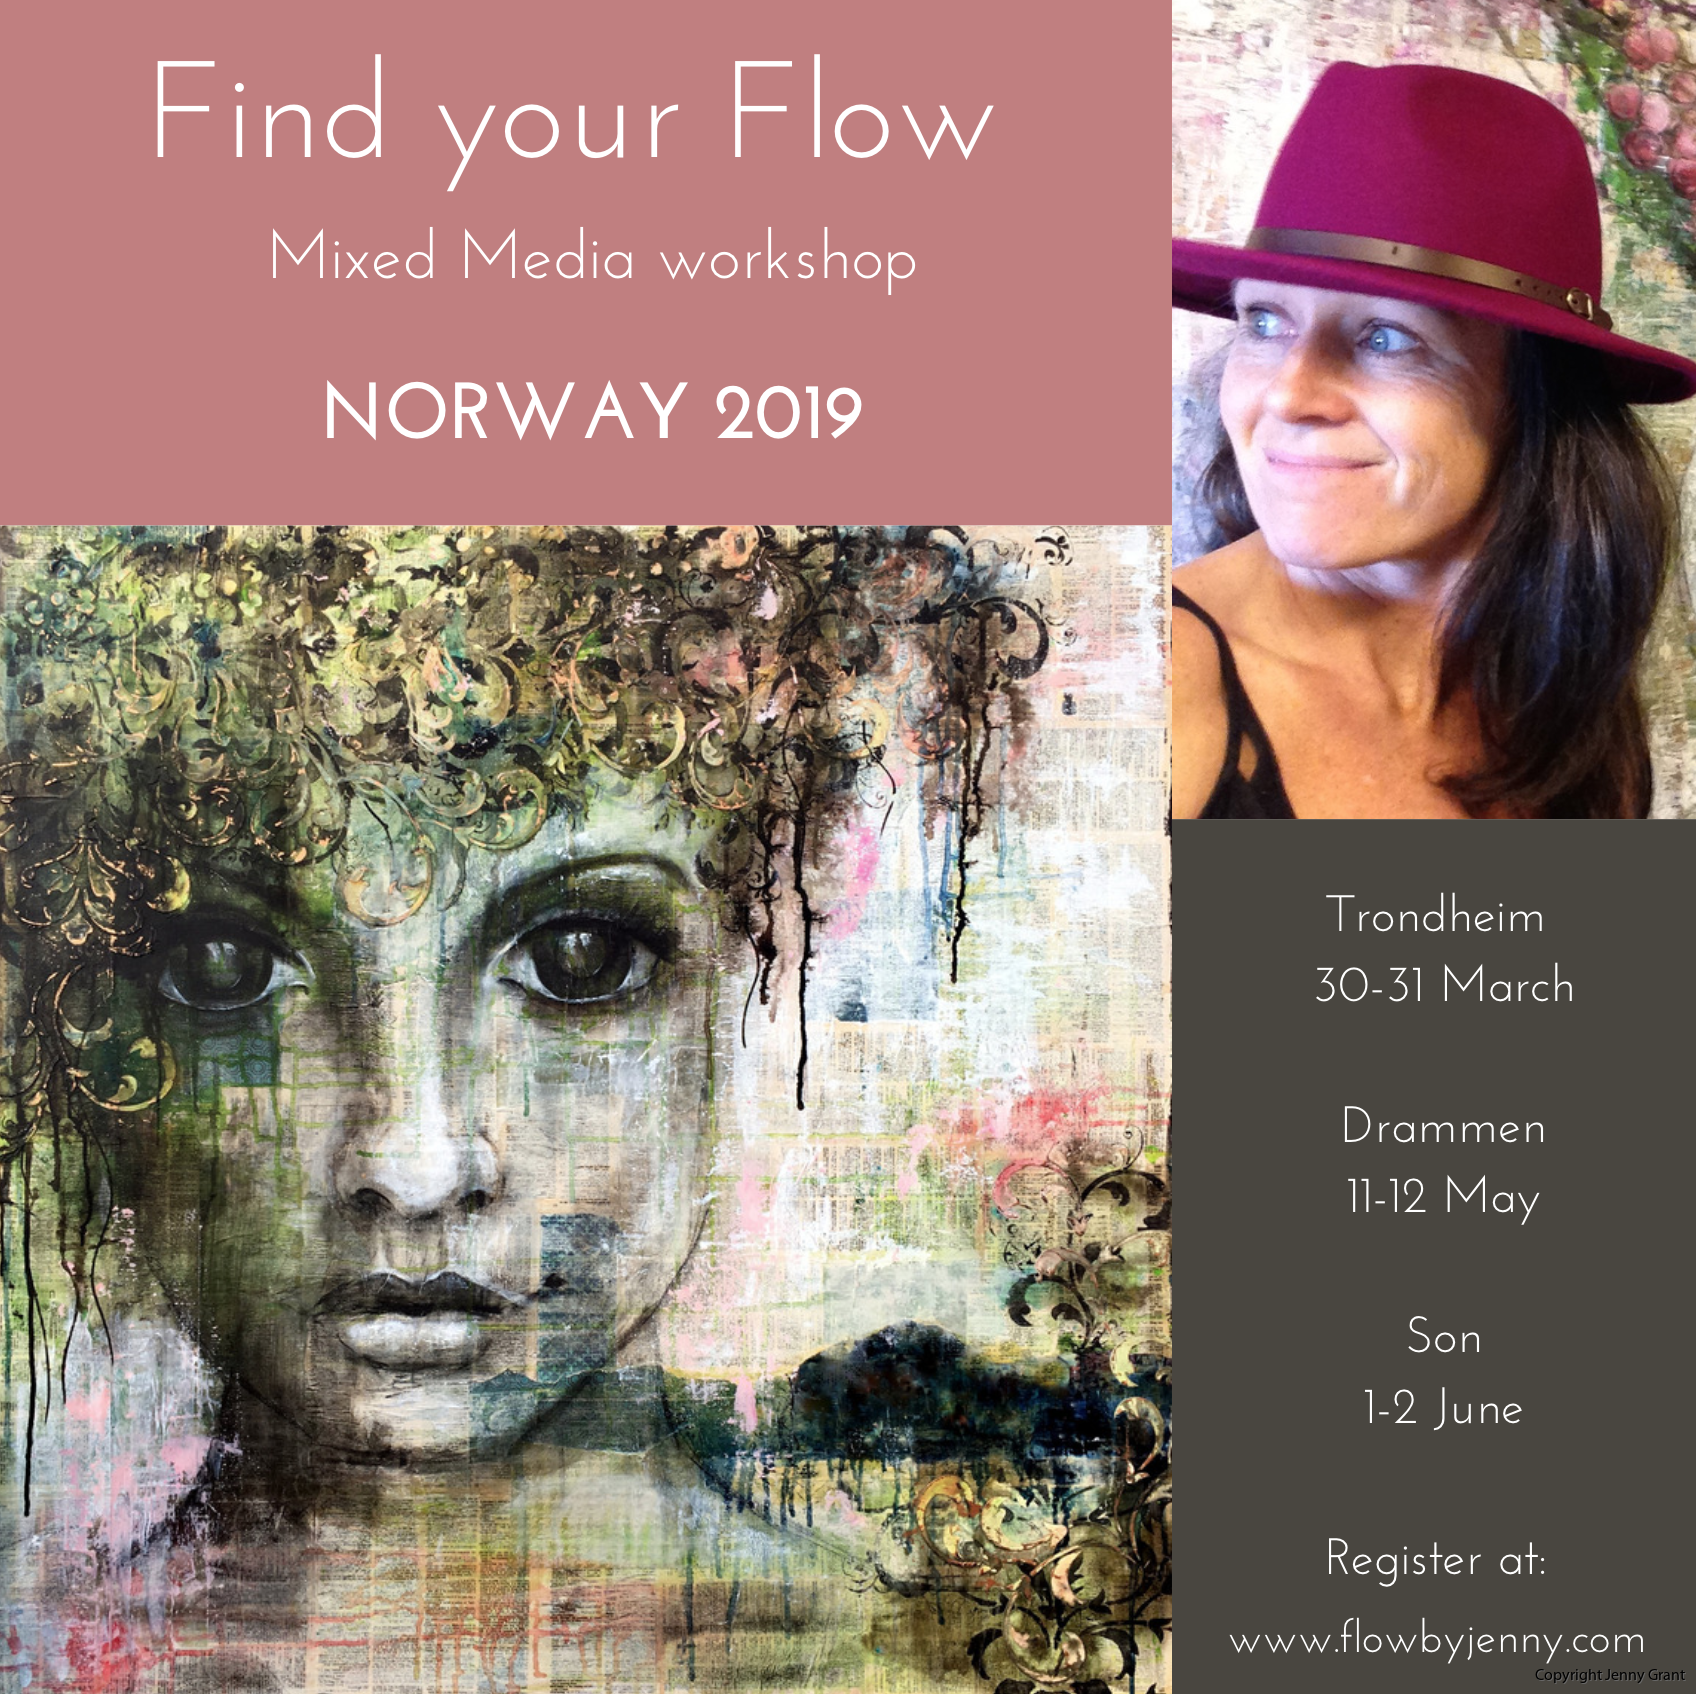 Find your Flow Norway